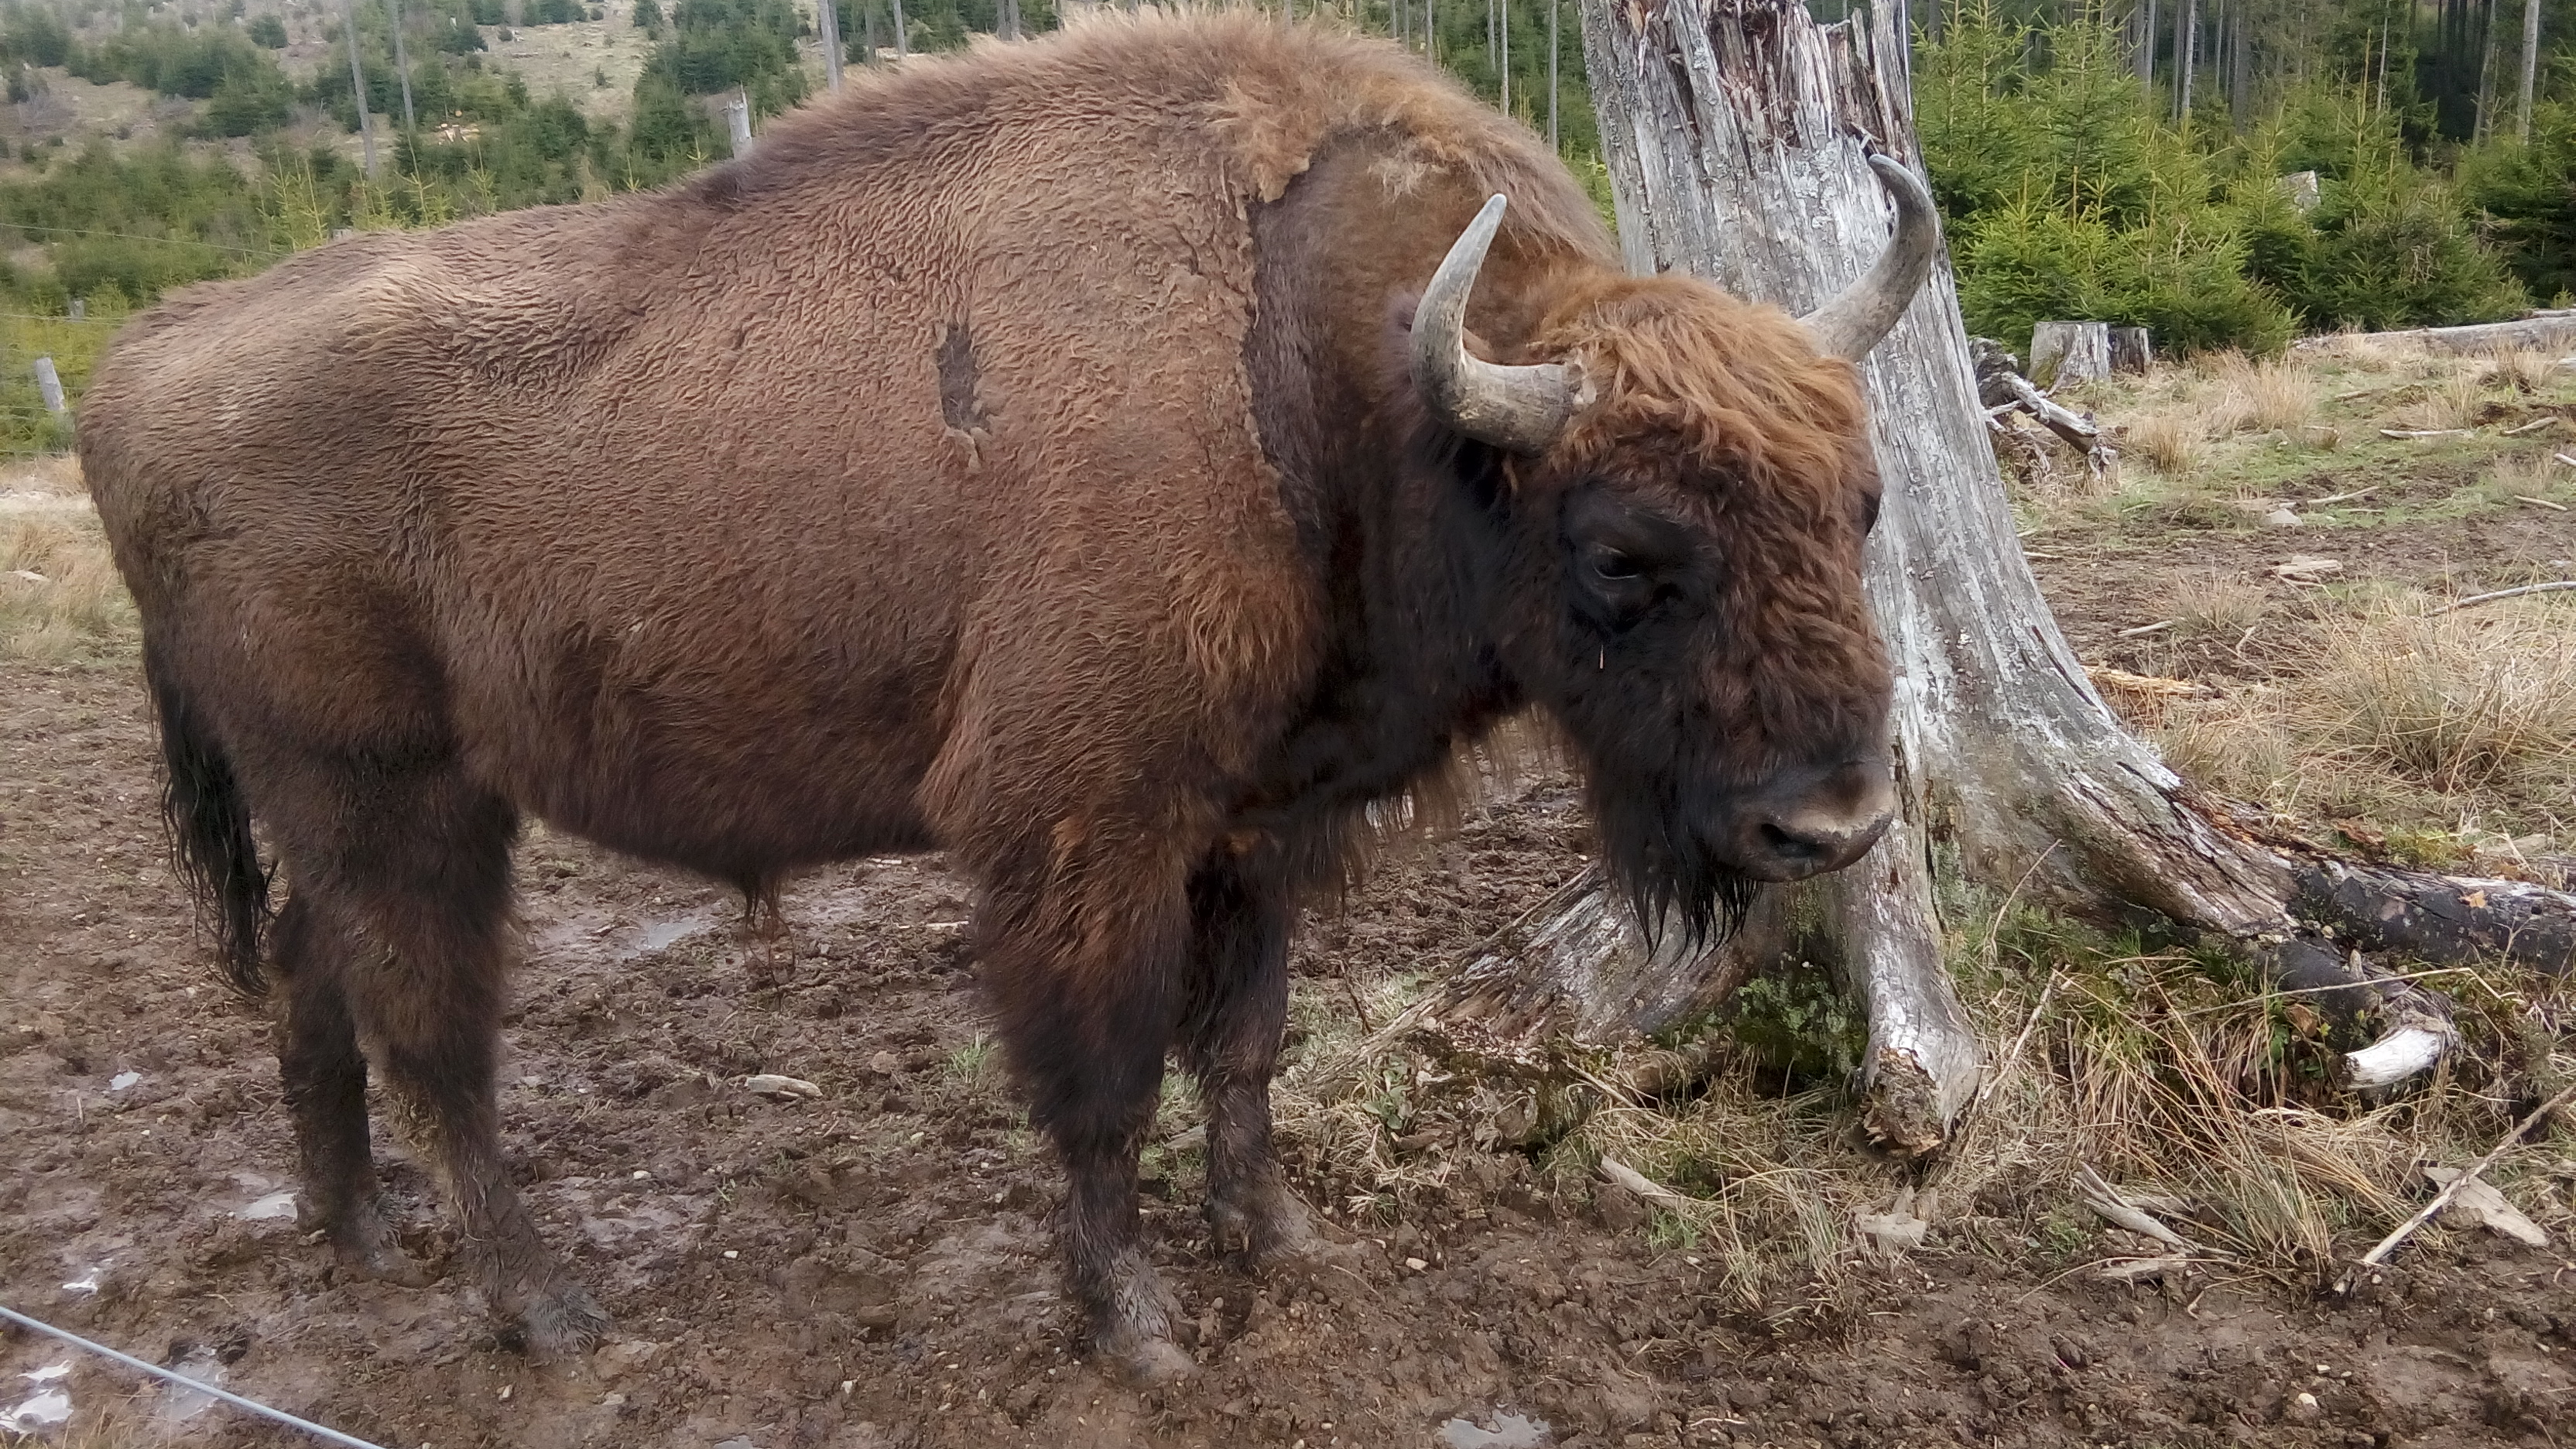 Wisent in Wisent-Welt